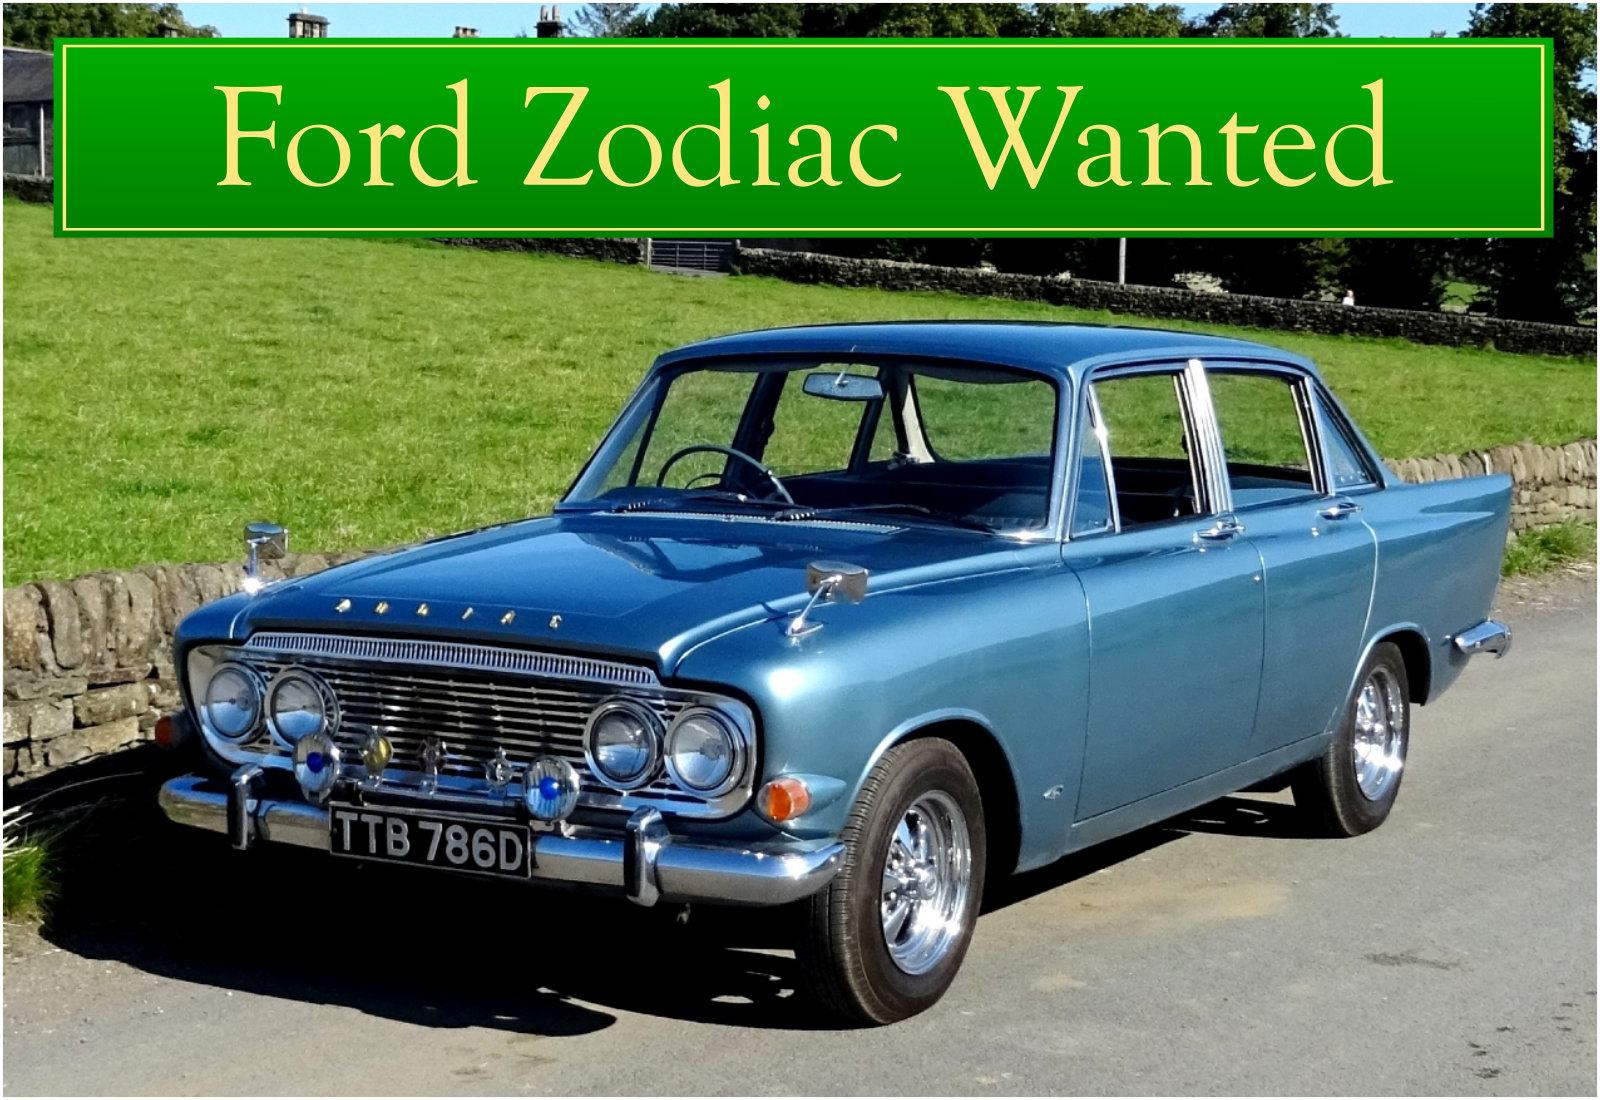 FORD ZODIAC MK3 WANTED, CLASSIC CARS WANTED, INSTANT PAYMENT Wanted (picture 1 of 6)